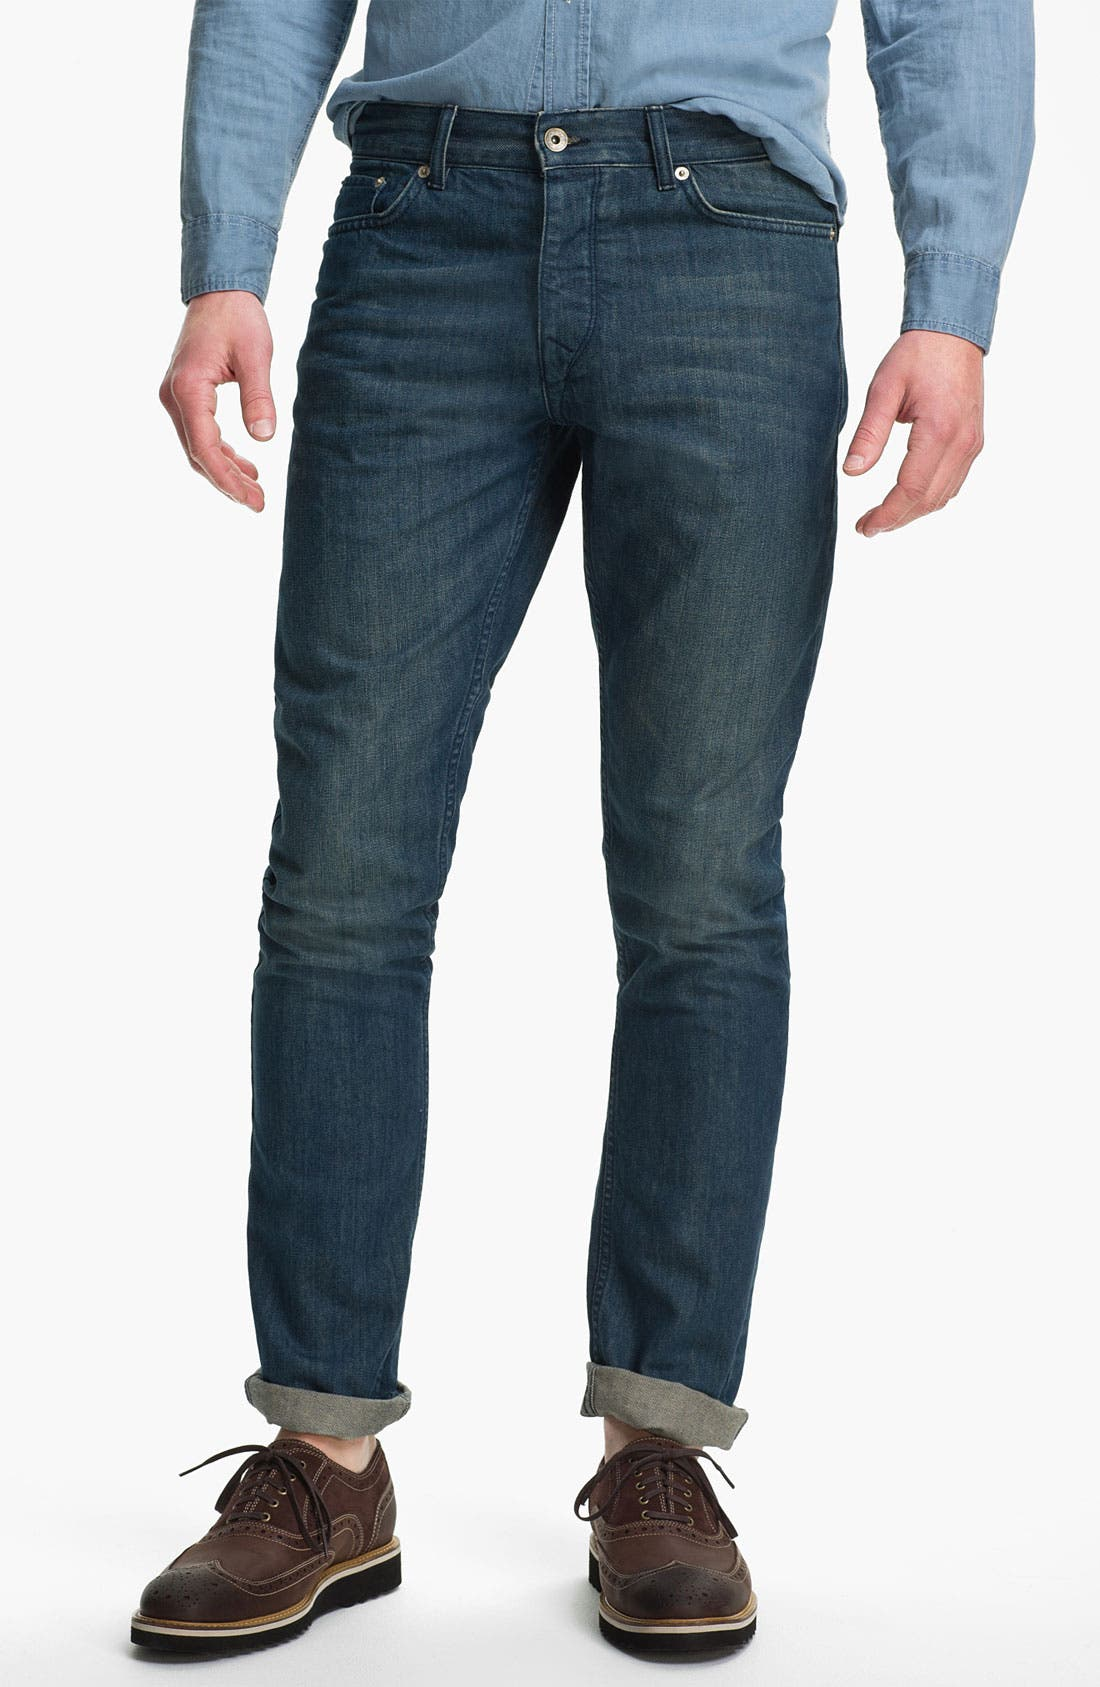 Alternate Image 1 Selected - Topman 'Isaac' Vintage Slim Fit Jeans (Mid Blue)